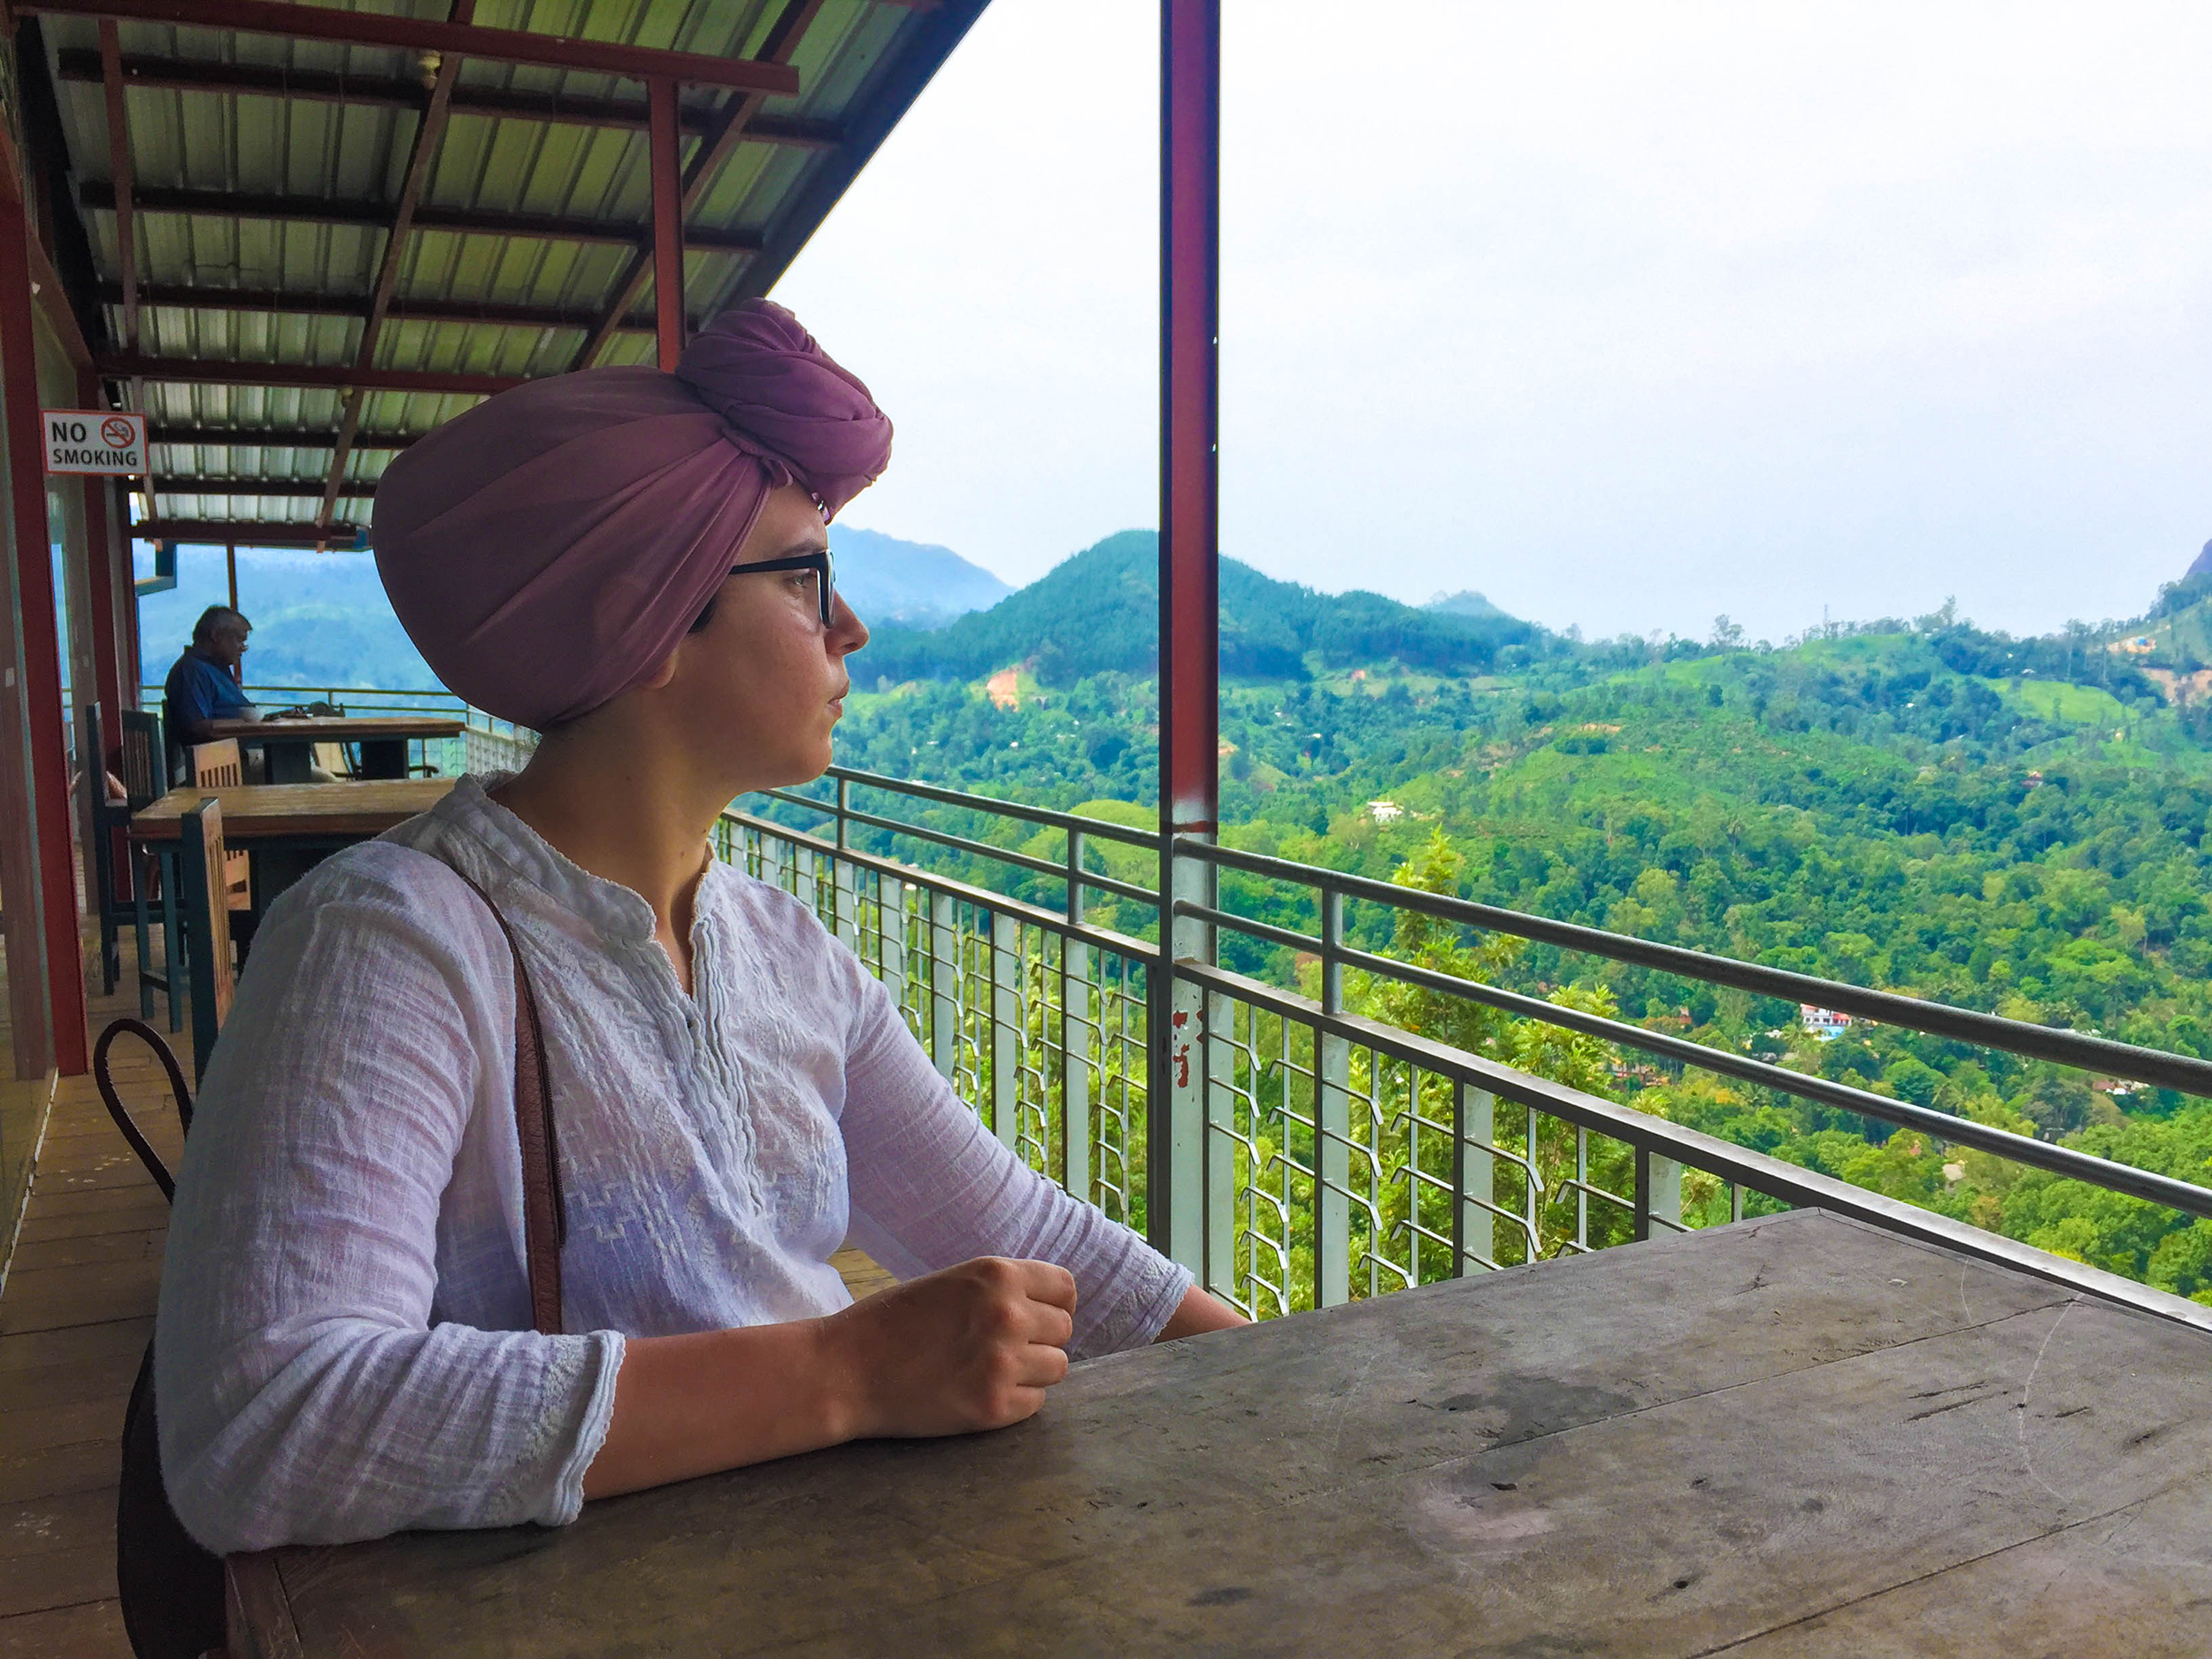 Overlooking the Uva Halpewaththa tea estate in Sri Lanka